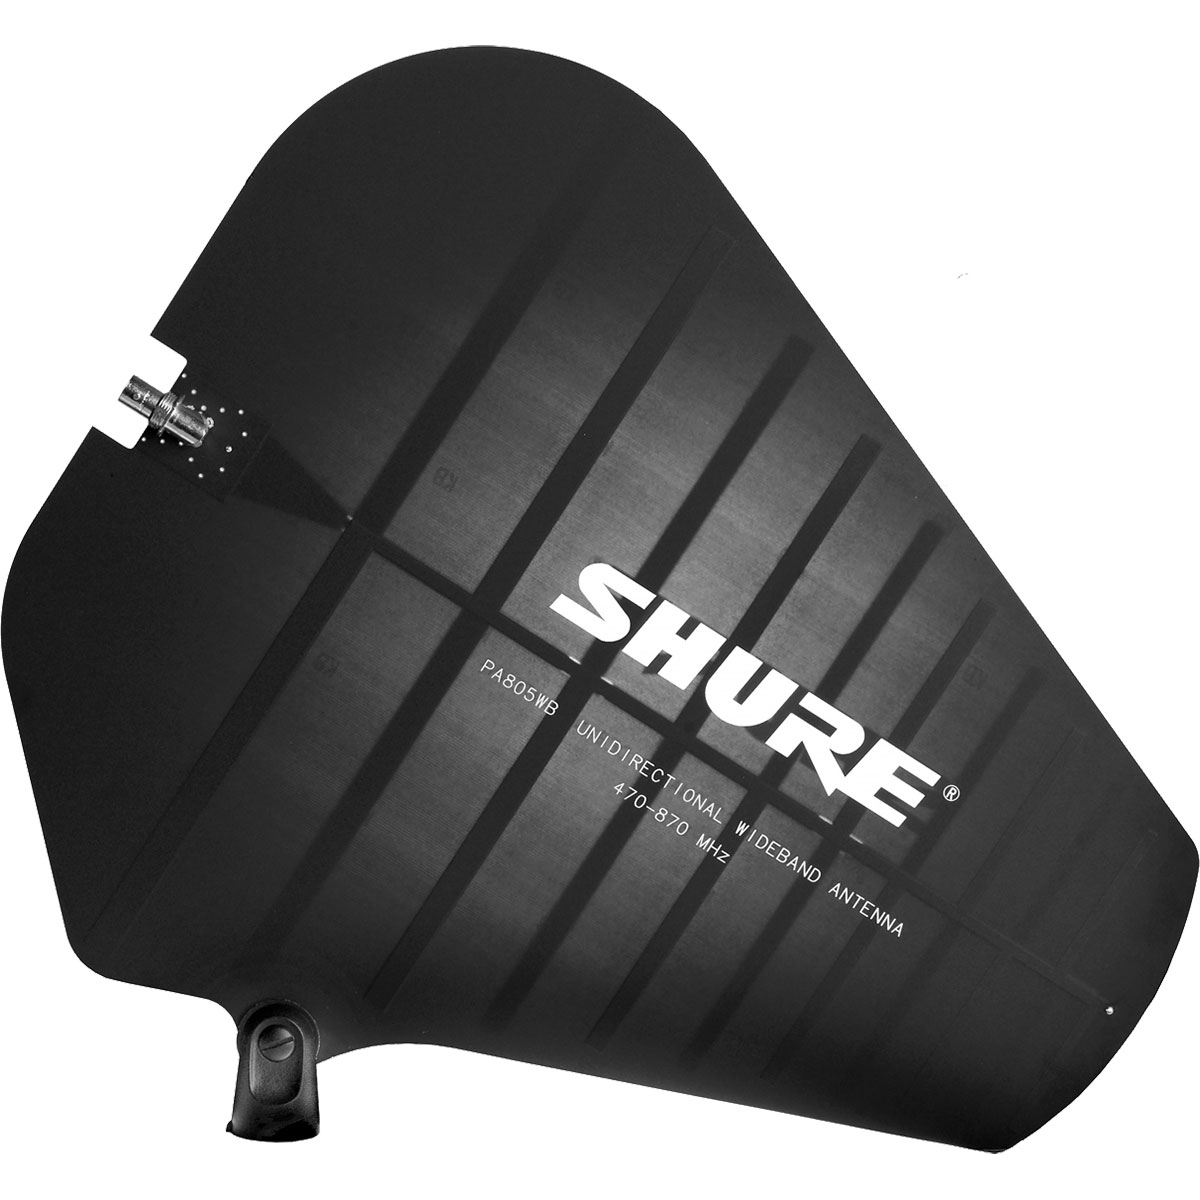 Shure Passive Directional Antenna (470-952 MHz), 10